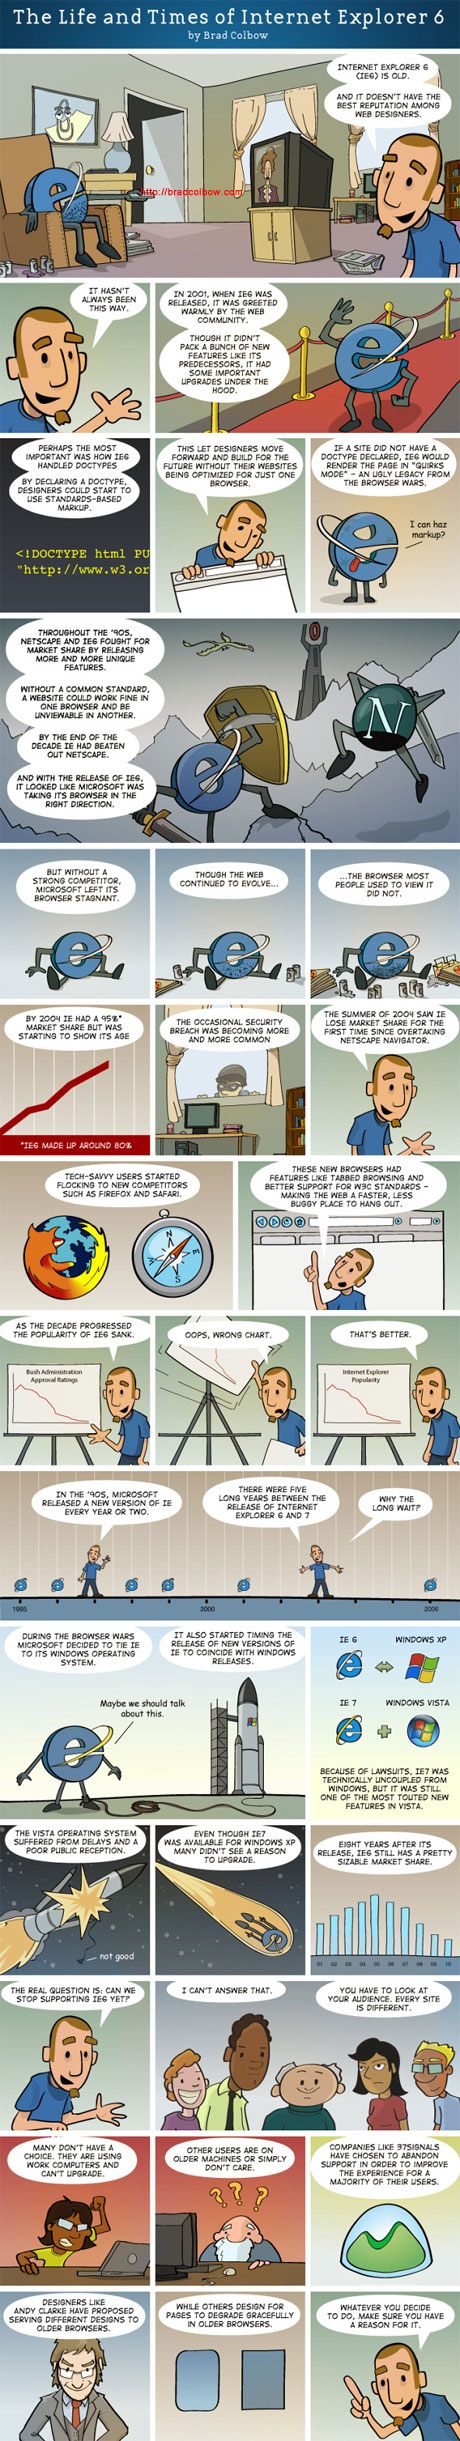 Internet Explorer 6 comic strip by Brad Colbow